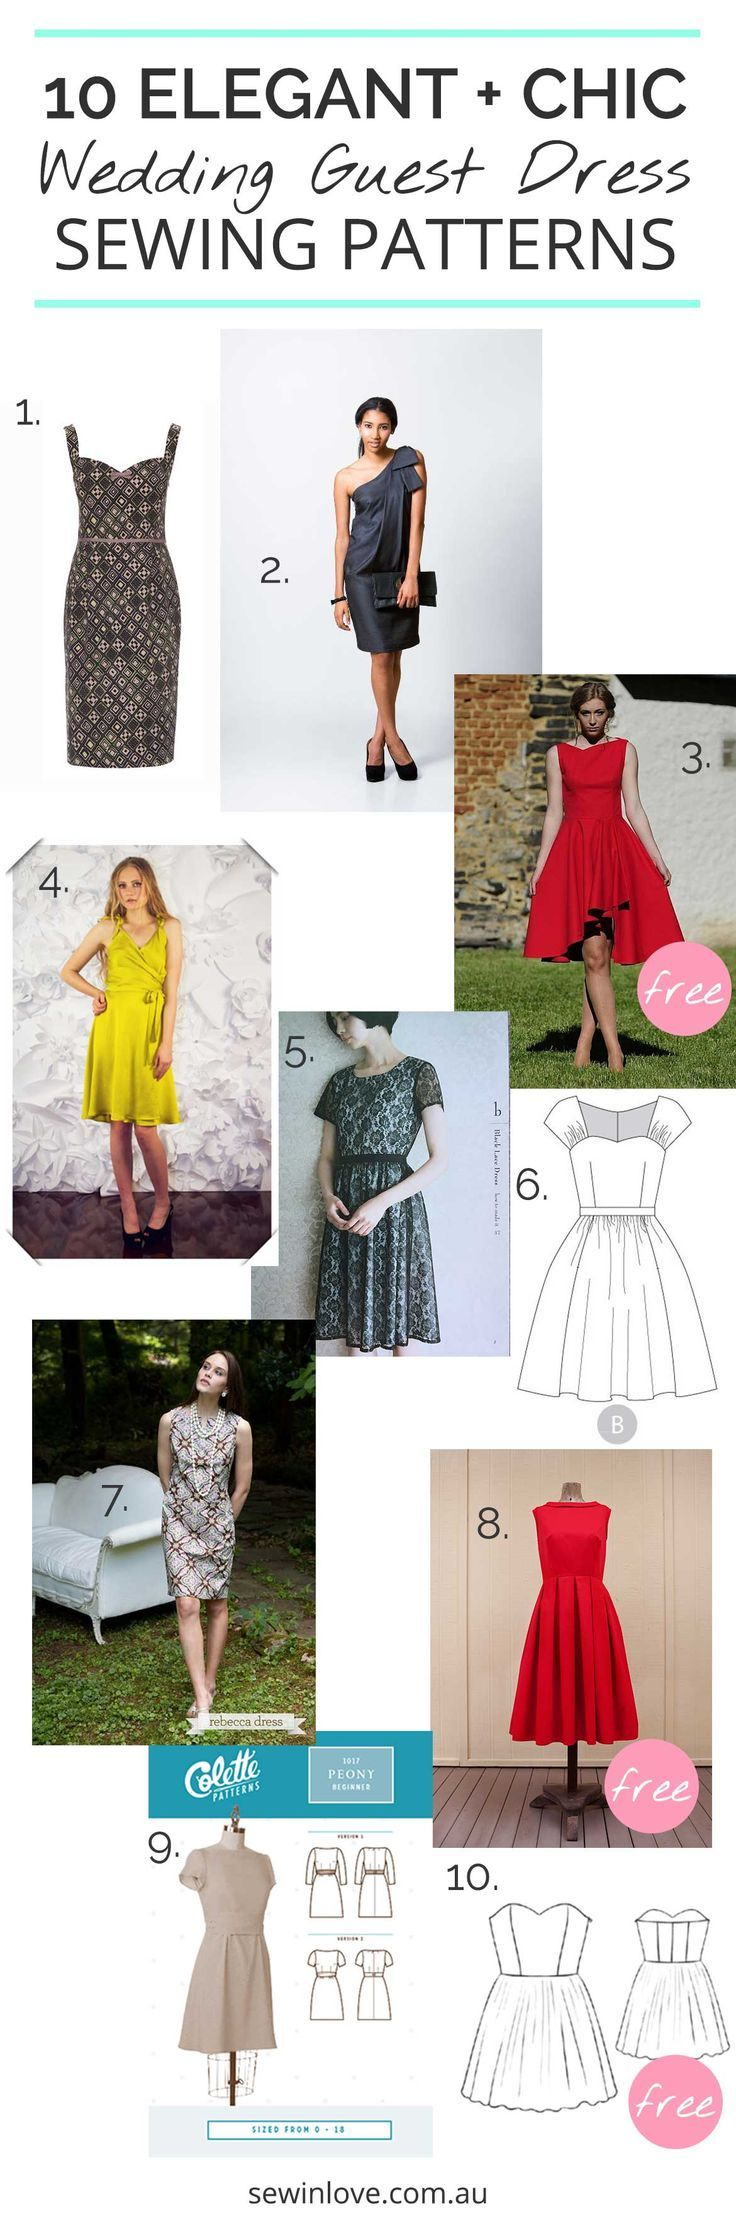 10 Wedding Guest Dresses to Make | A special occasion is just the motivation I need to sew something a little more advanced than usual. Here are 10 sewing patterns which would make an elegant and chic wedding guest outfit. 3 of them are free!